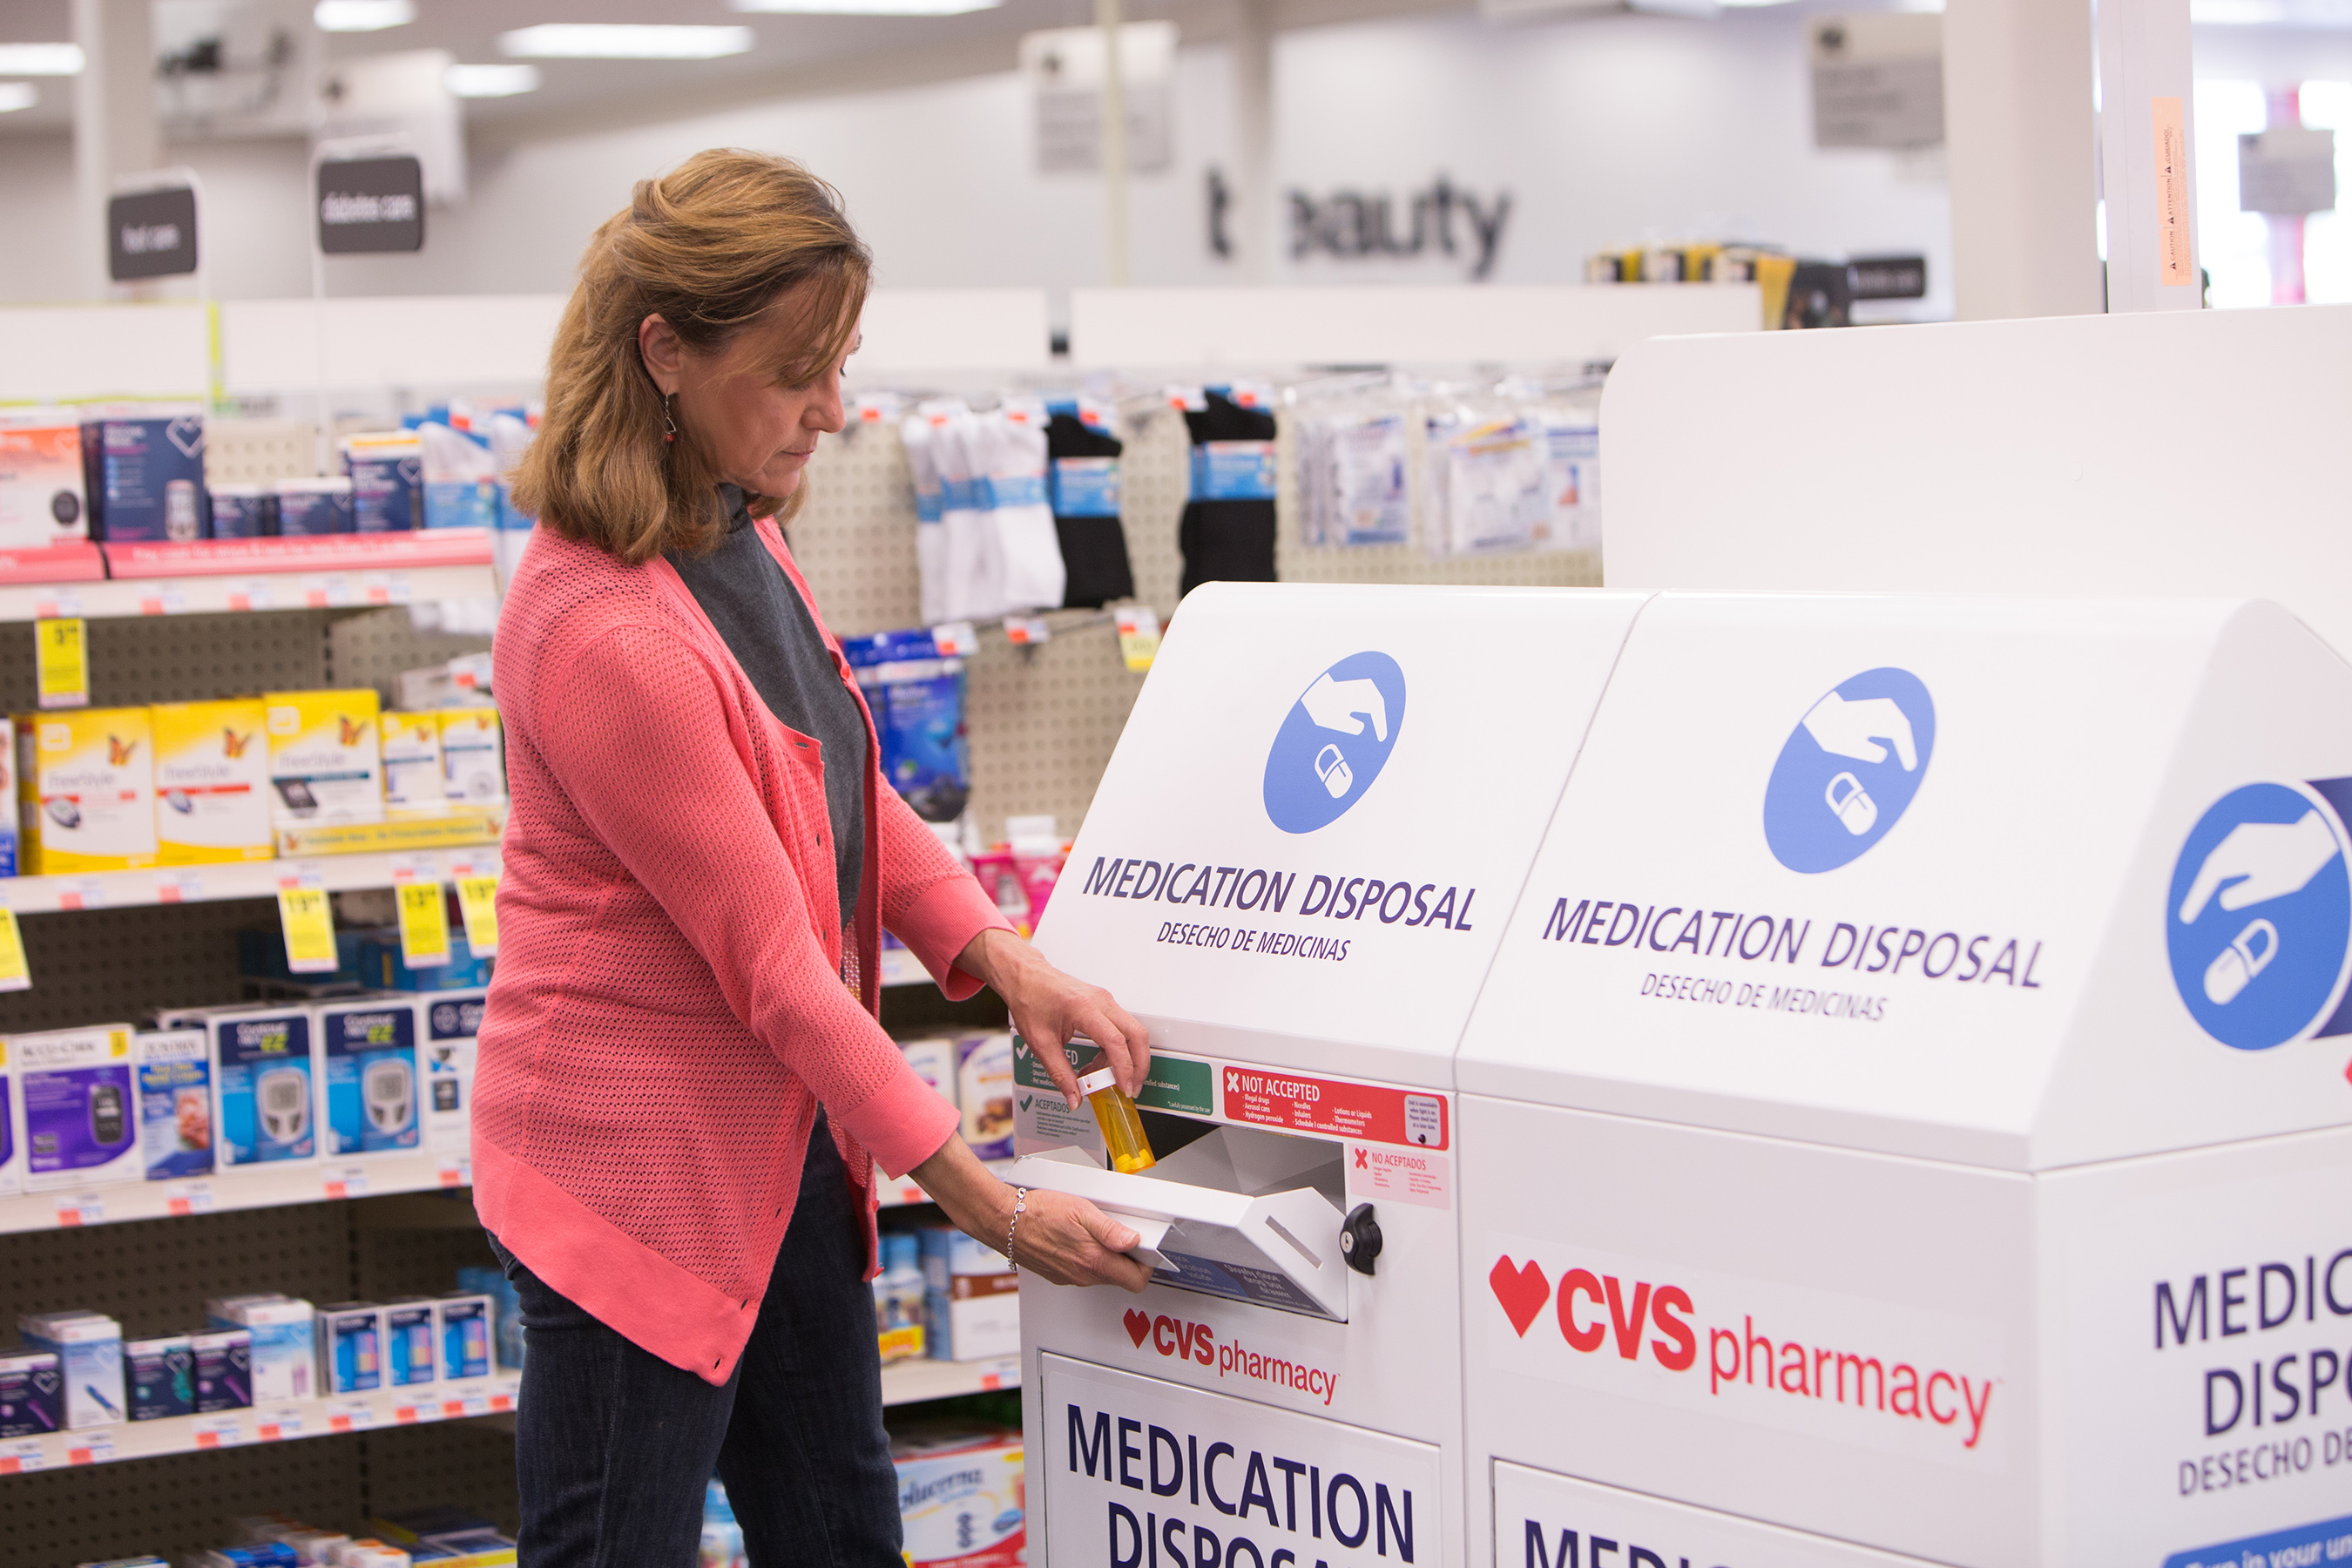 Female patient dropping off medication at CVS Pharmacy disposal unit